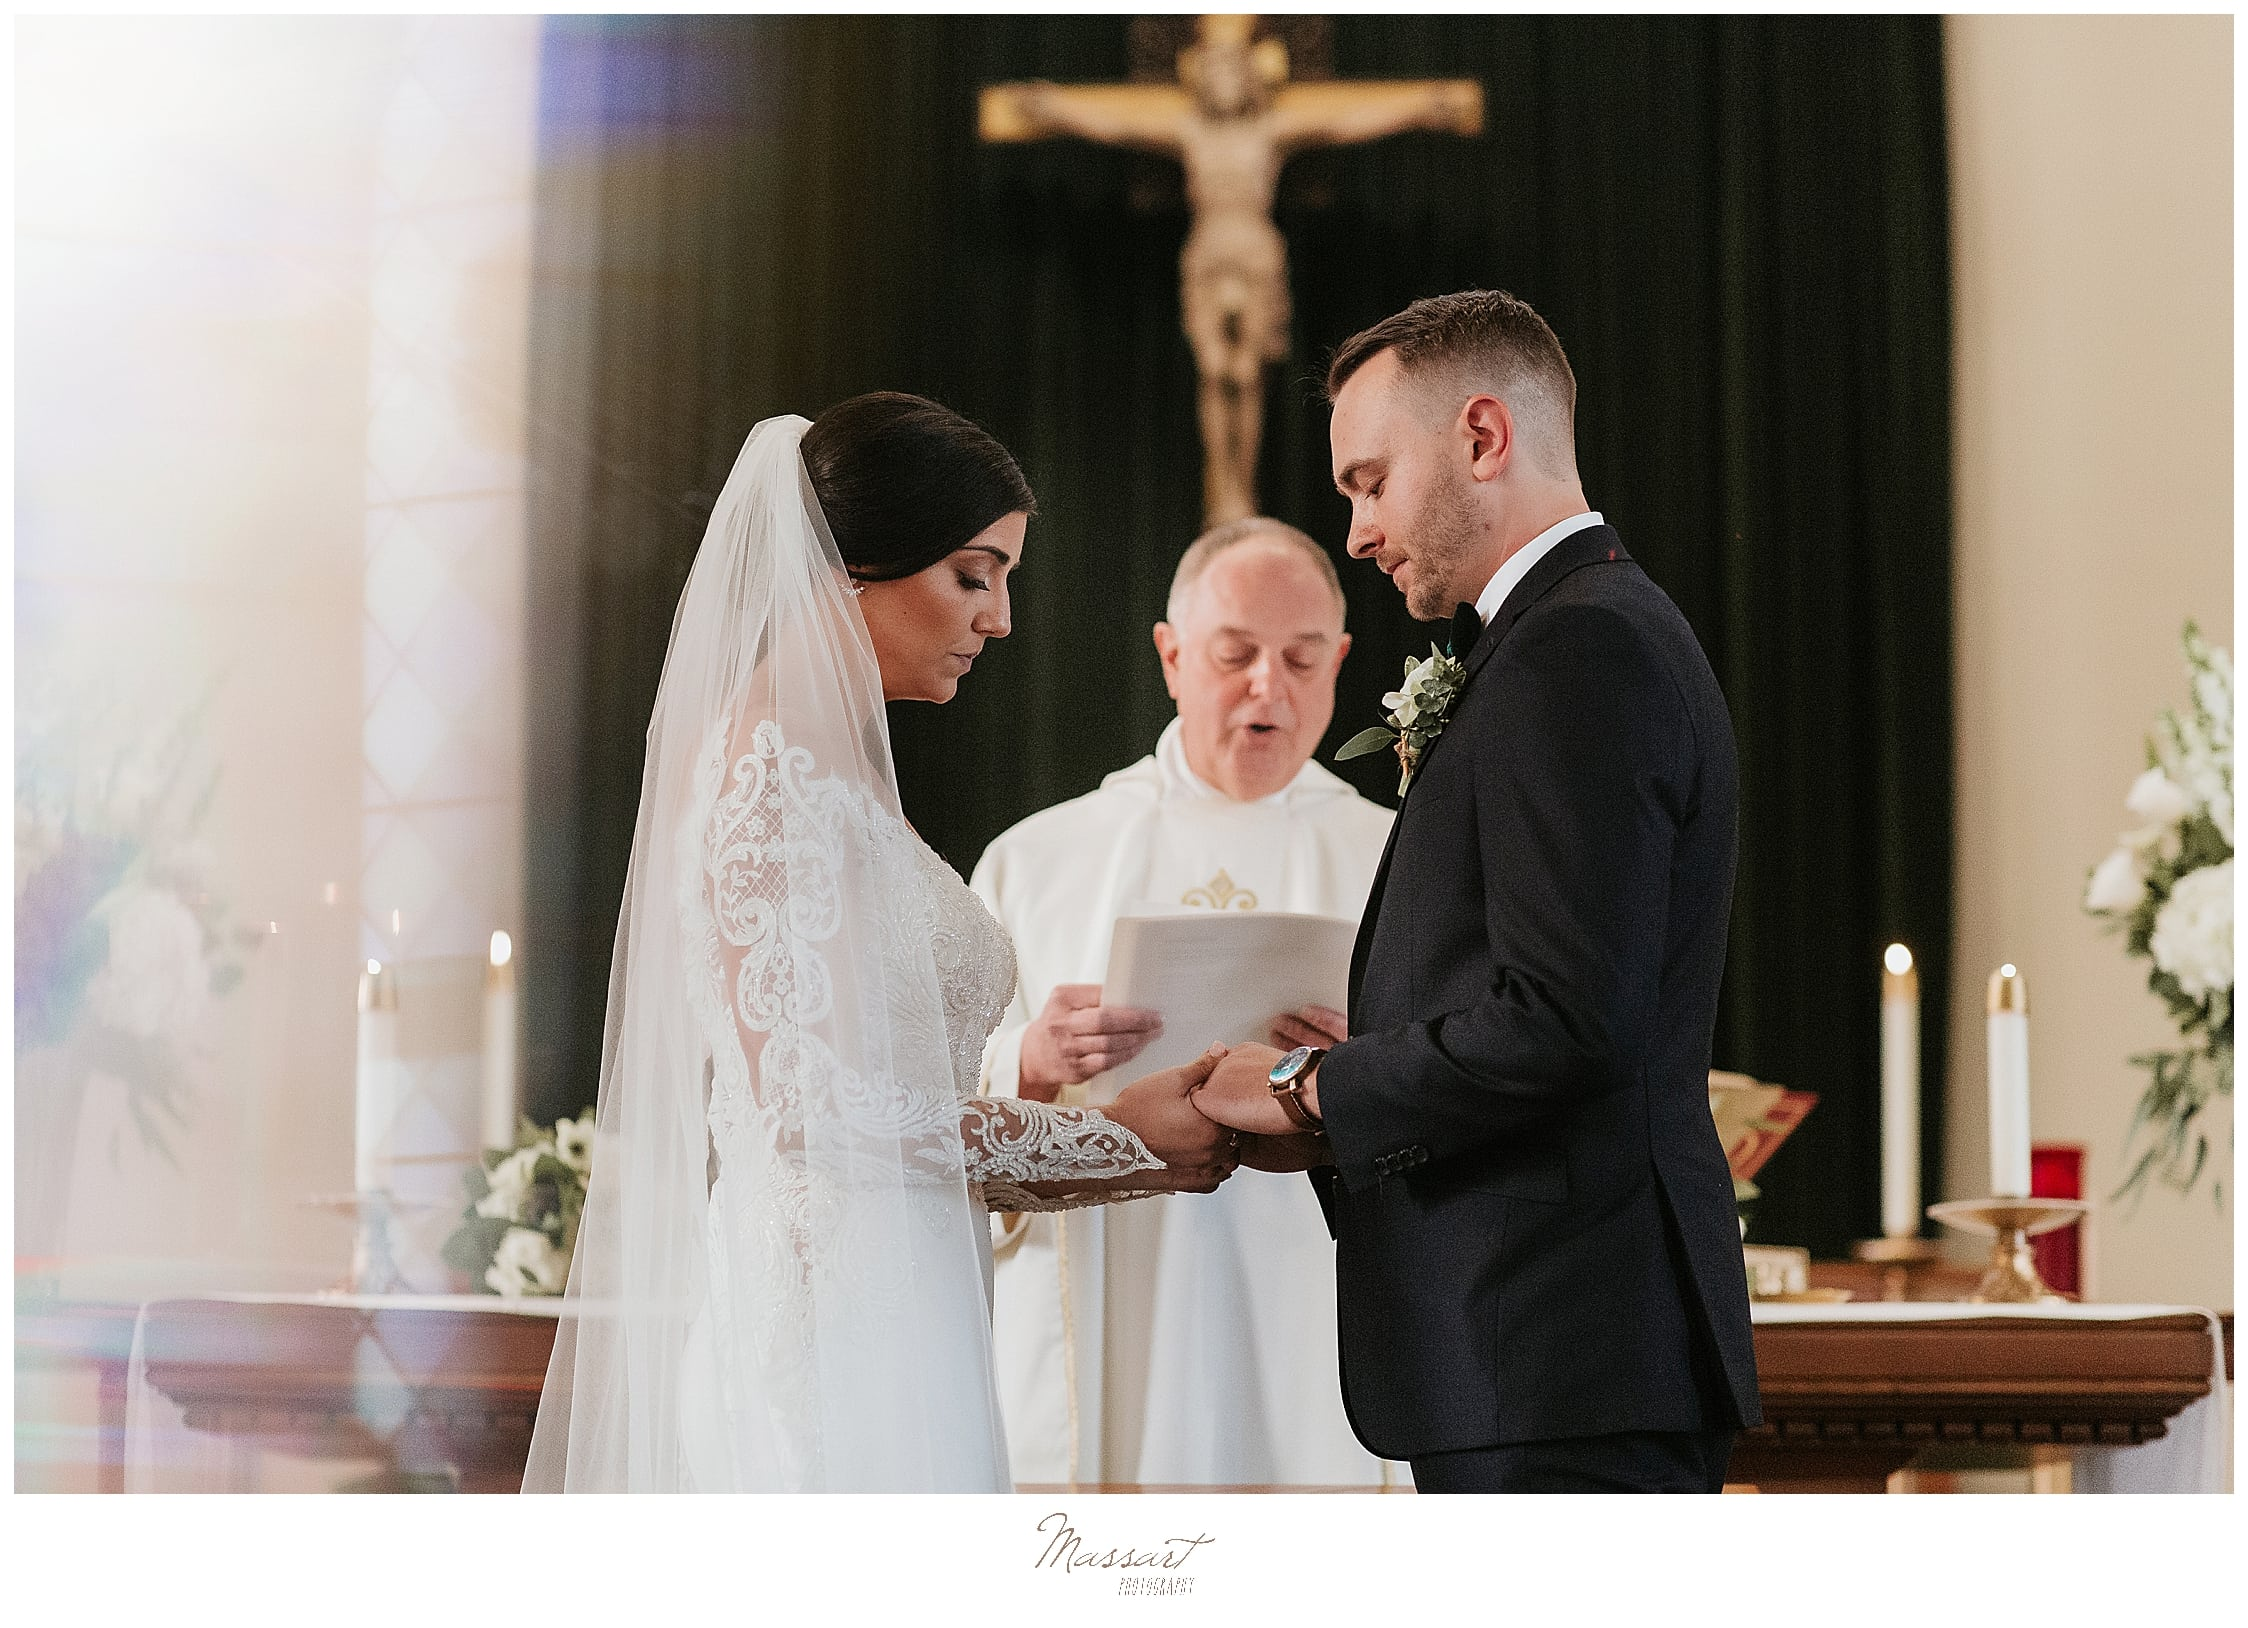 church wedding ceremony photographed by MA wedding photographers Massart Photography